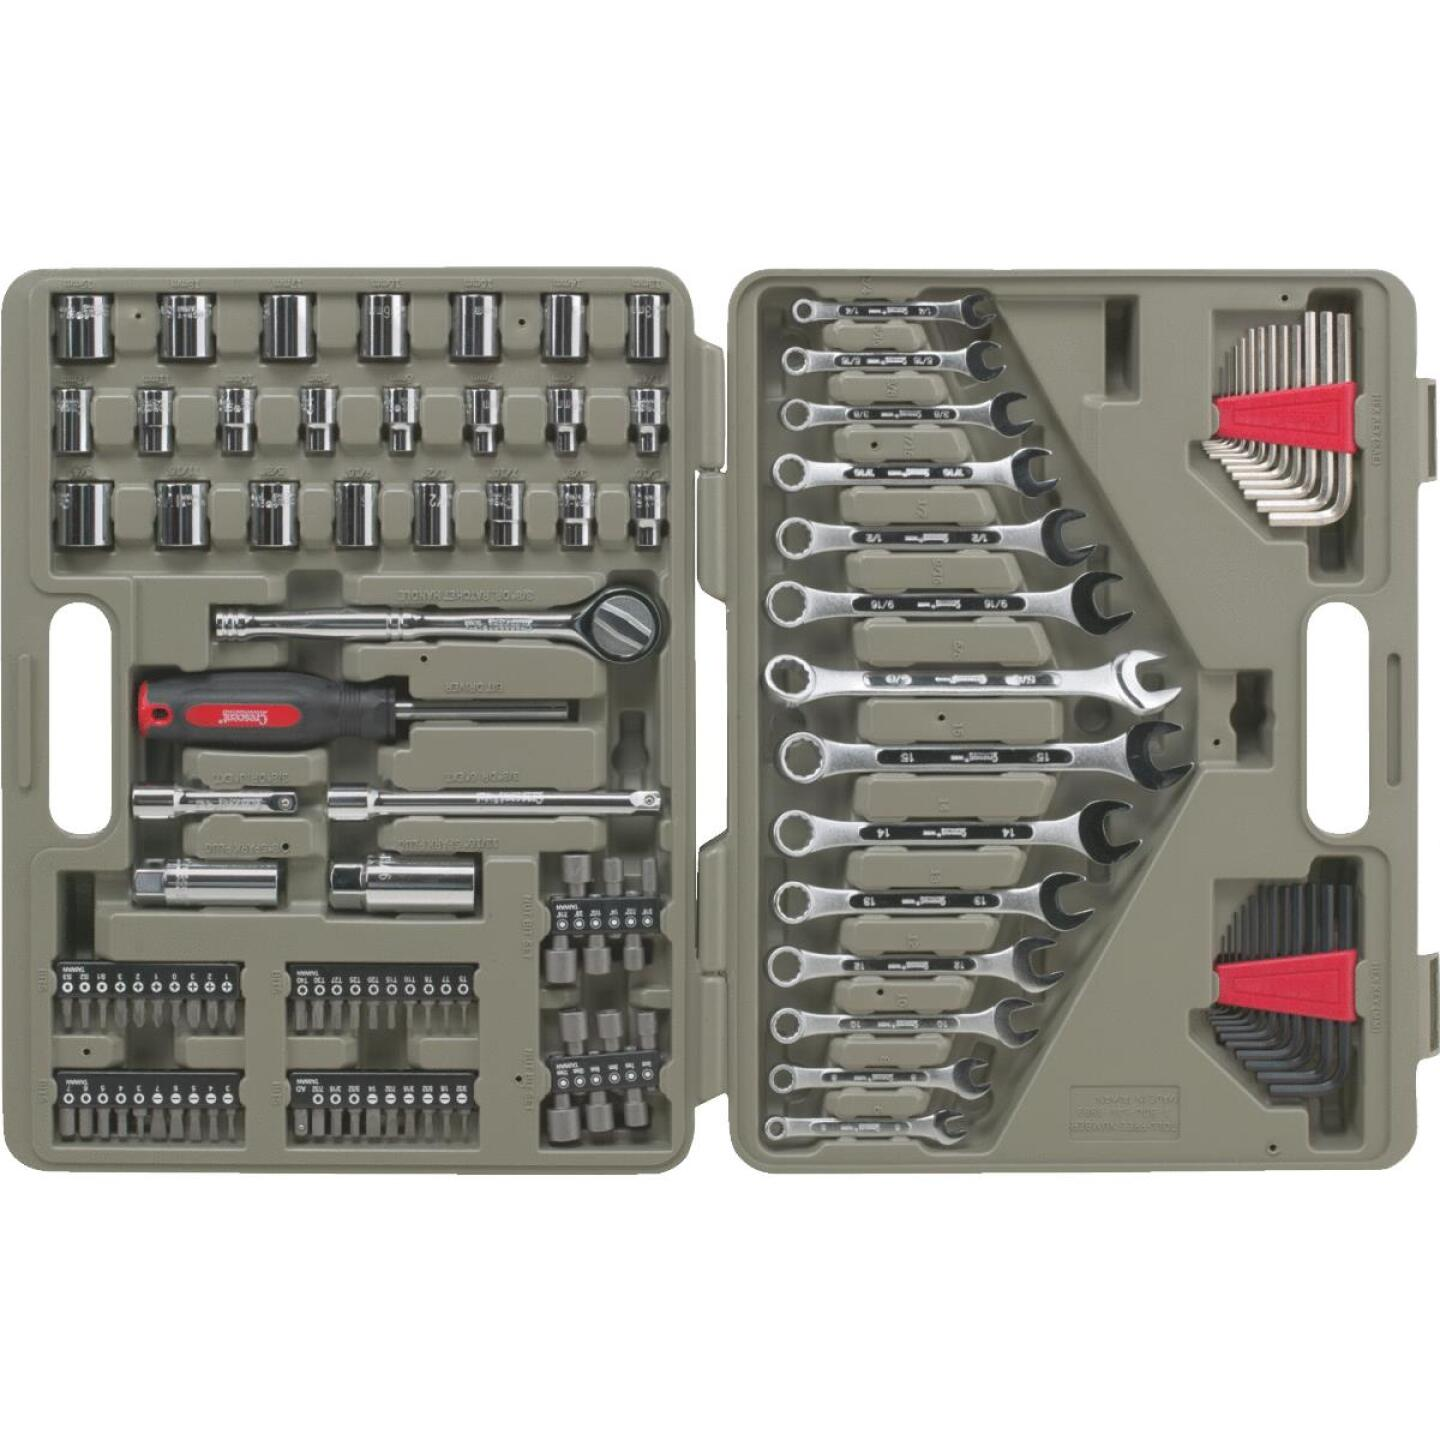 Crescent 3/8 In. Drive 12-Point Standard/Metric Mechanic & Automative Tool Set (128-Piece) Image 1